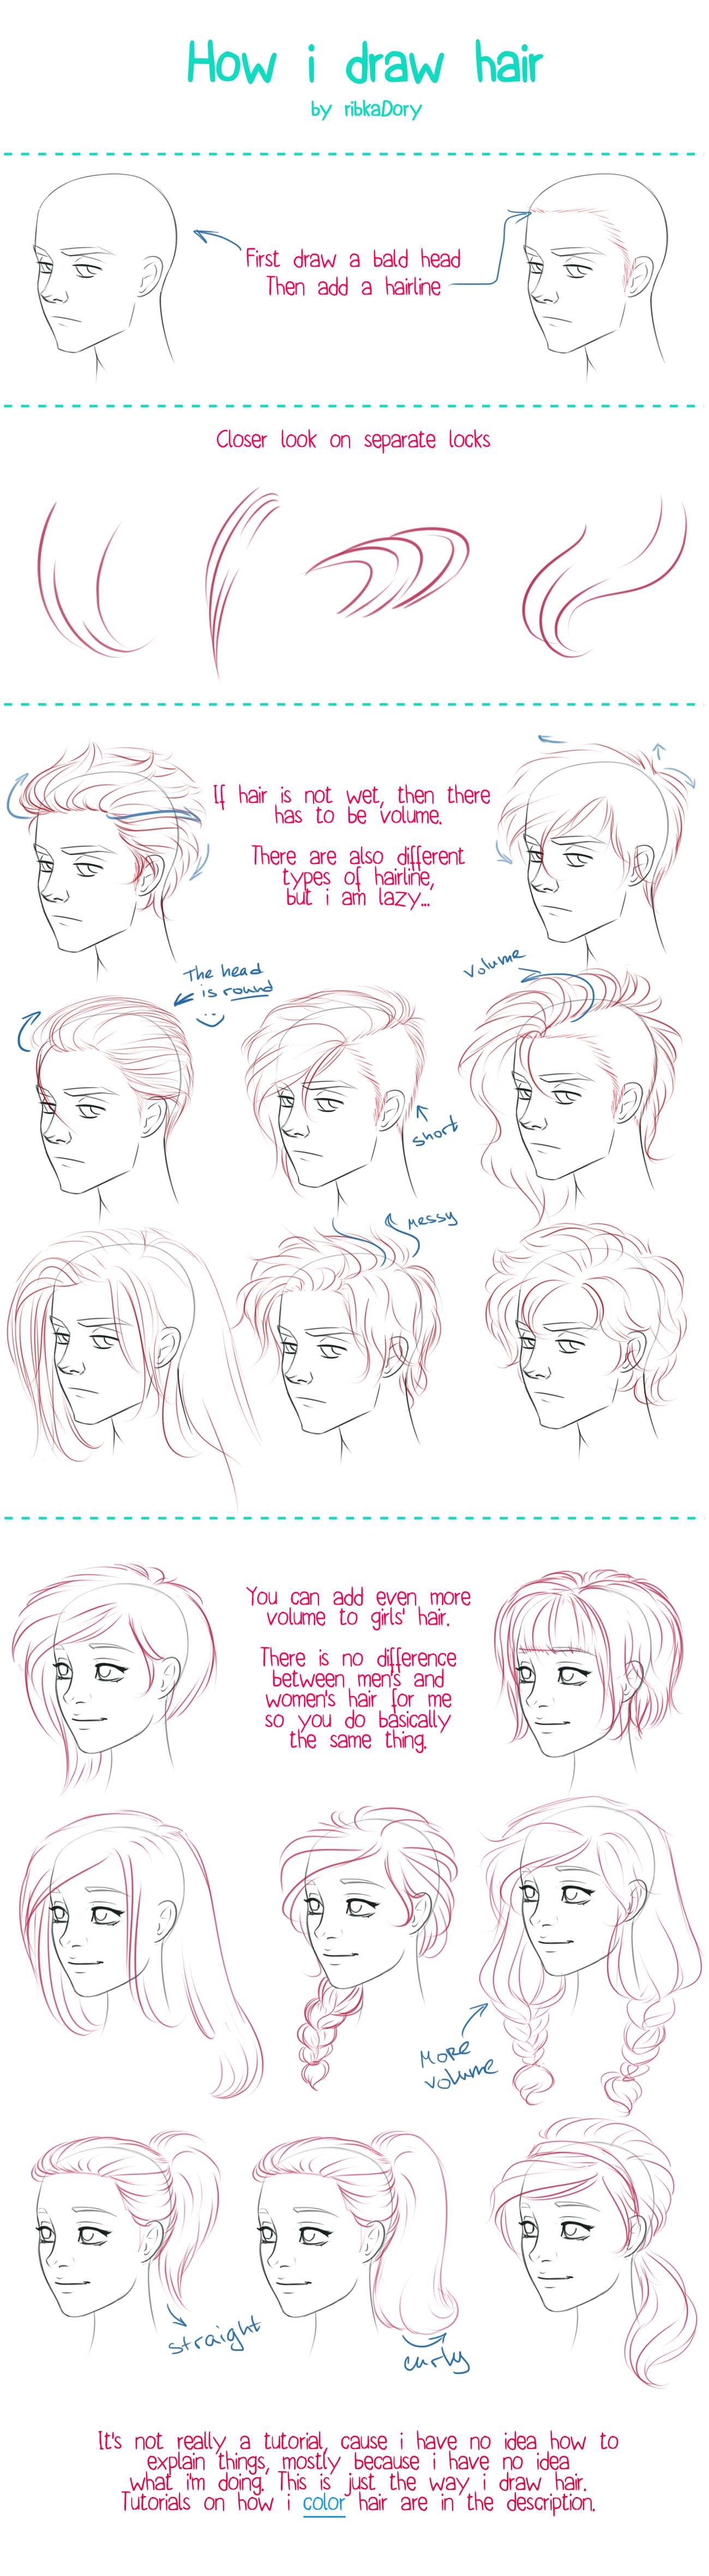 How I Draw Hair by ribkaDory